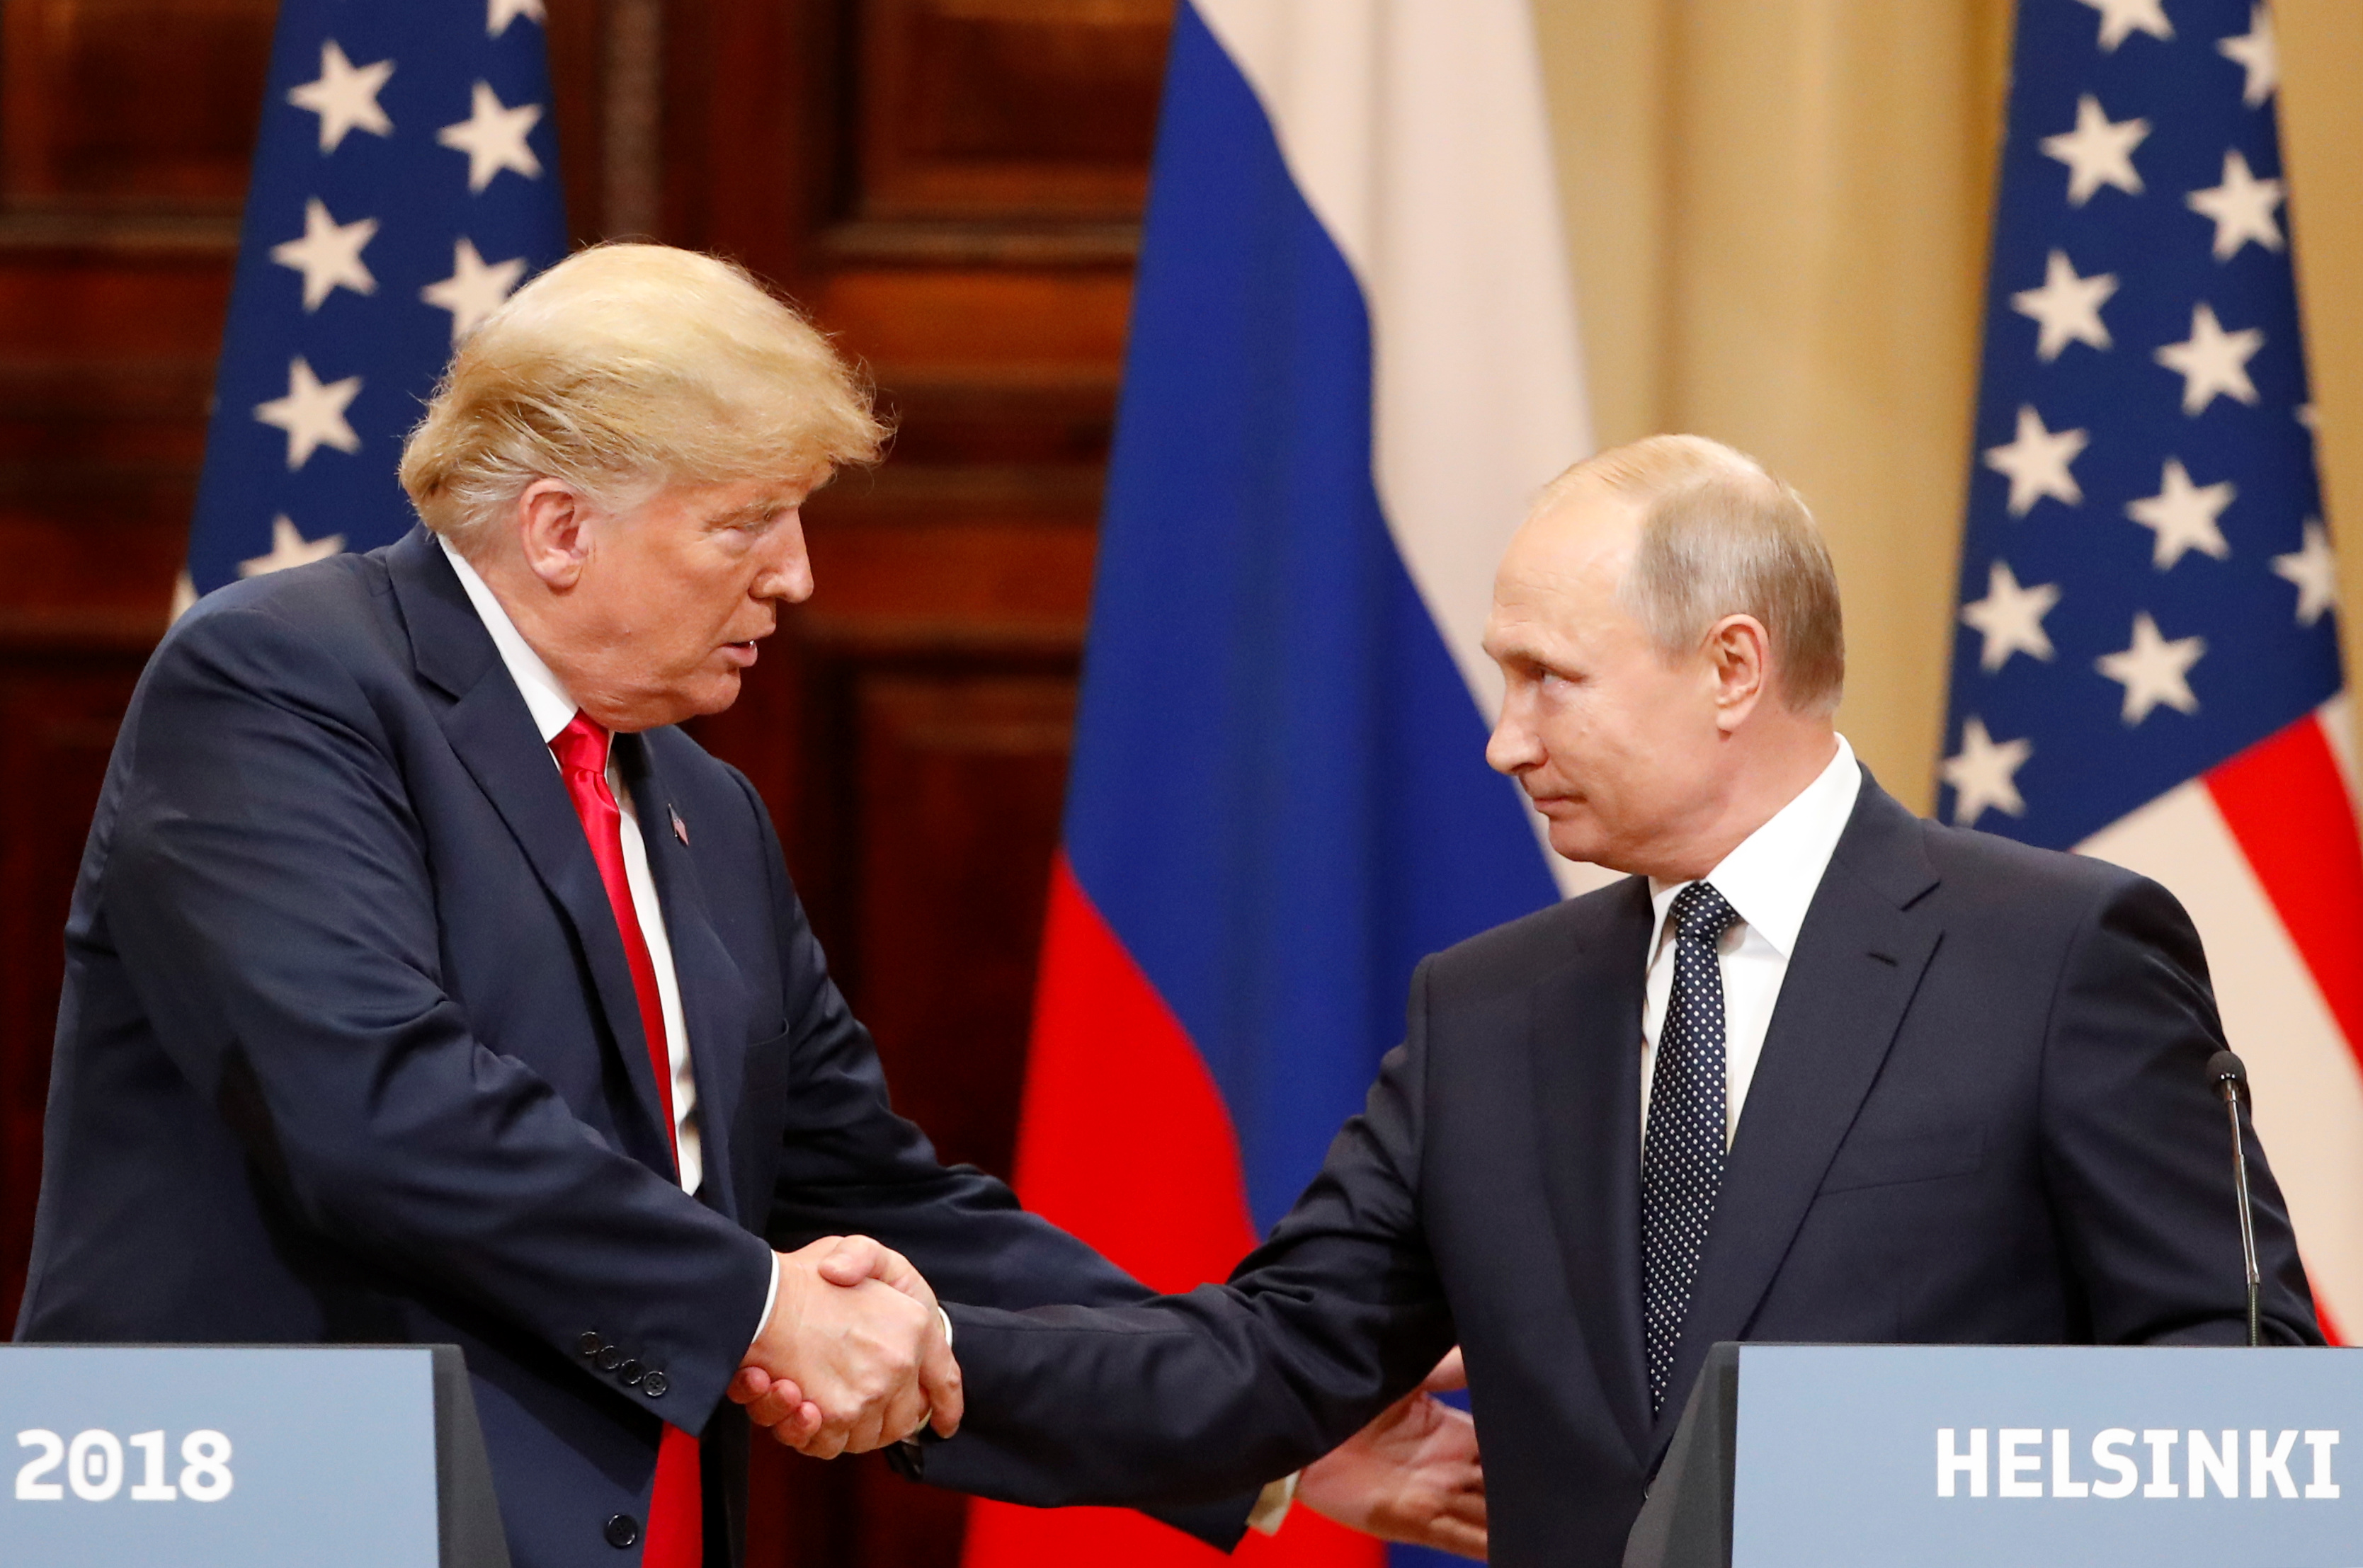 Slide 1 of 17: U.S. President Donald Trump and Russian President Vladimir Putin shake hands as they hold a joint news conference after their meeting in Helsinki, Finland July 16, 2018. REUTERS/Grigory Dukor